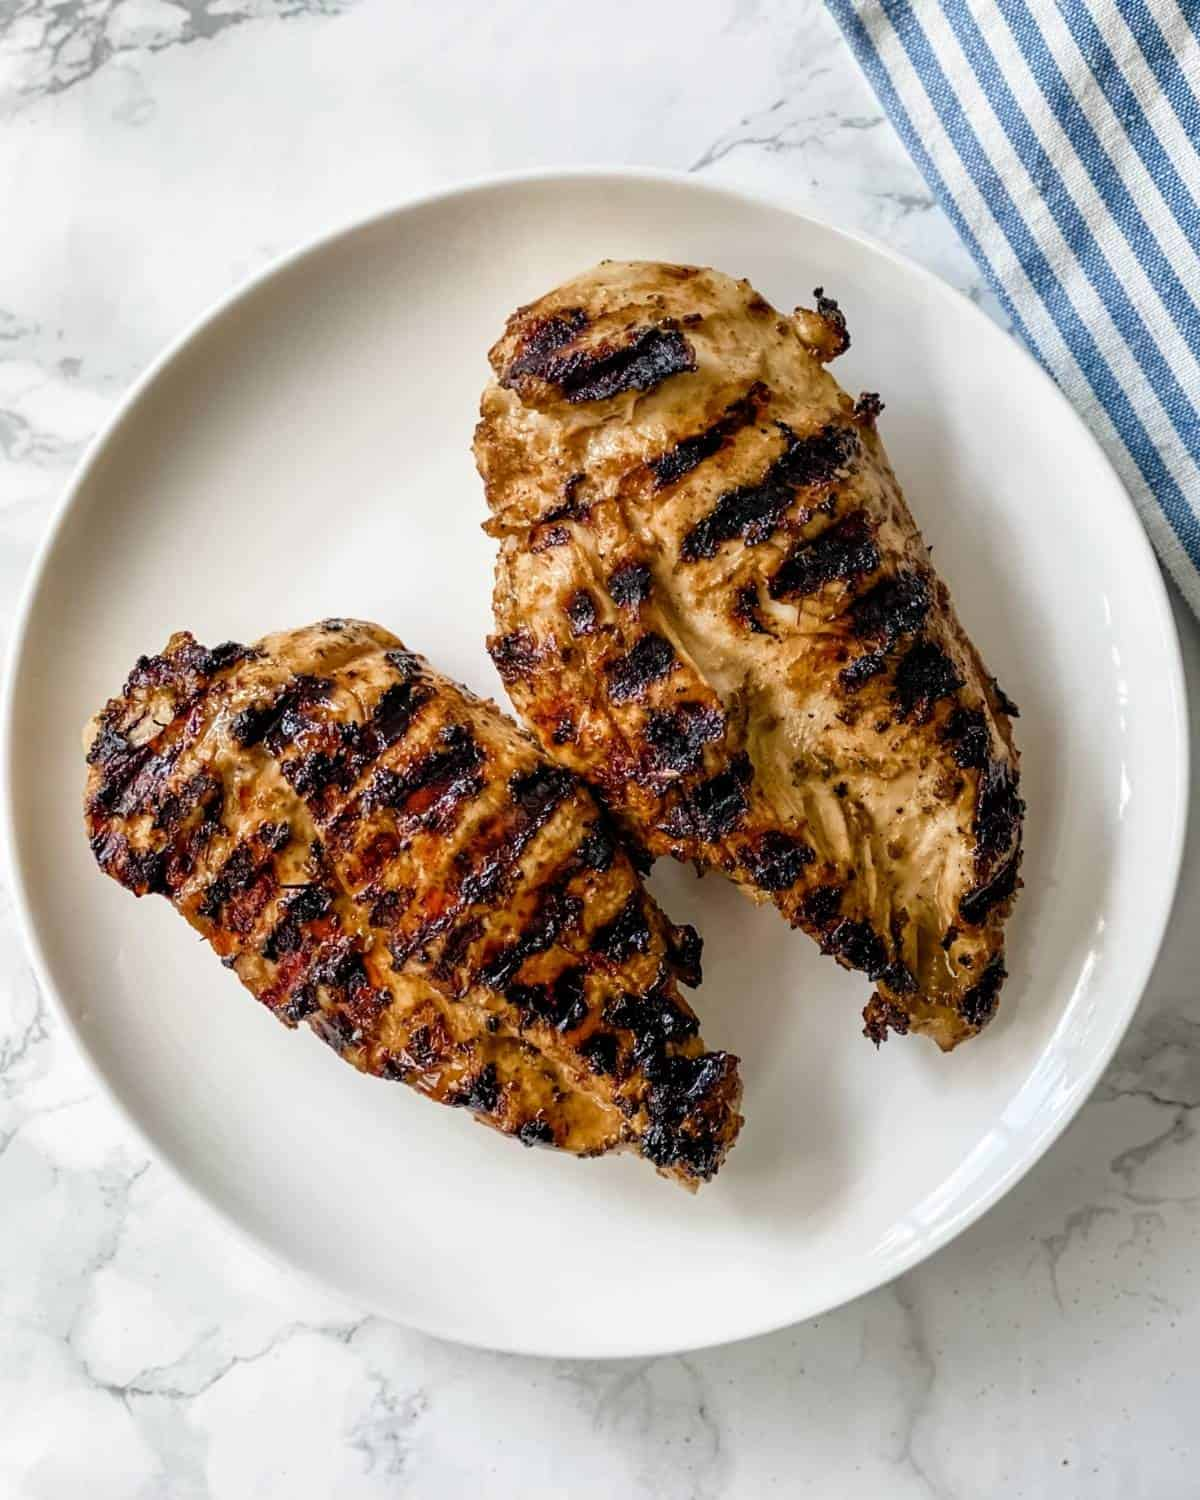 two pieces of grilled chicken breasts on a plate